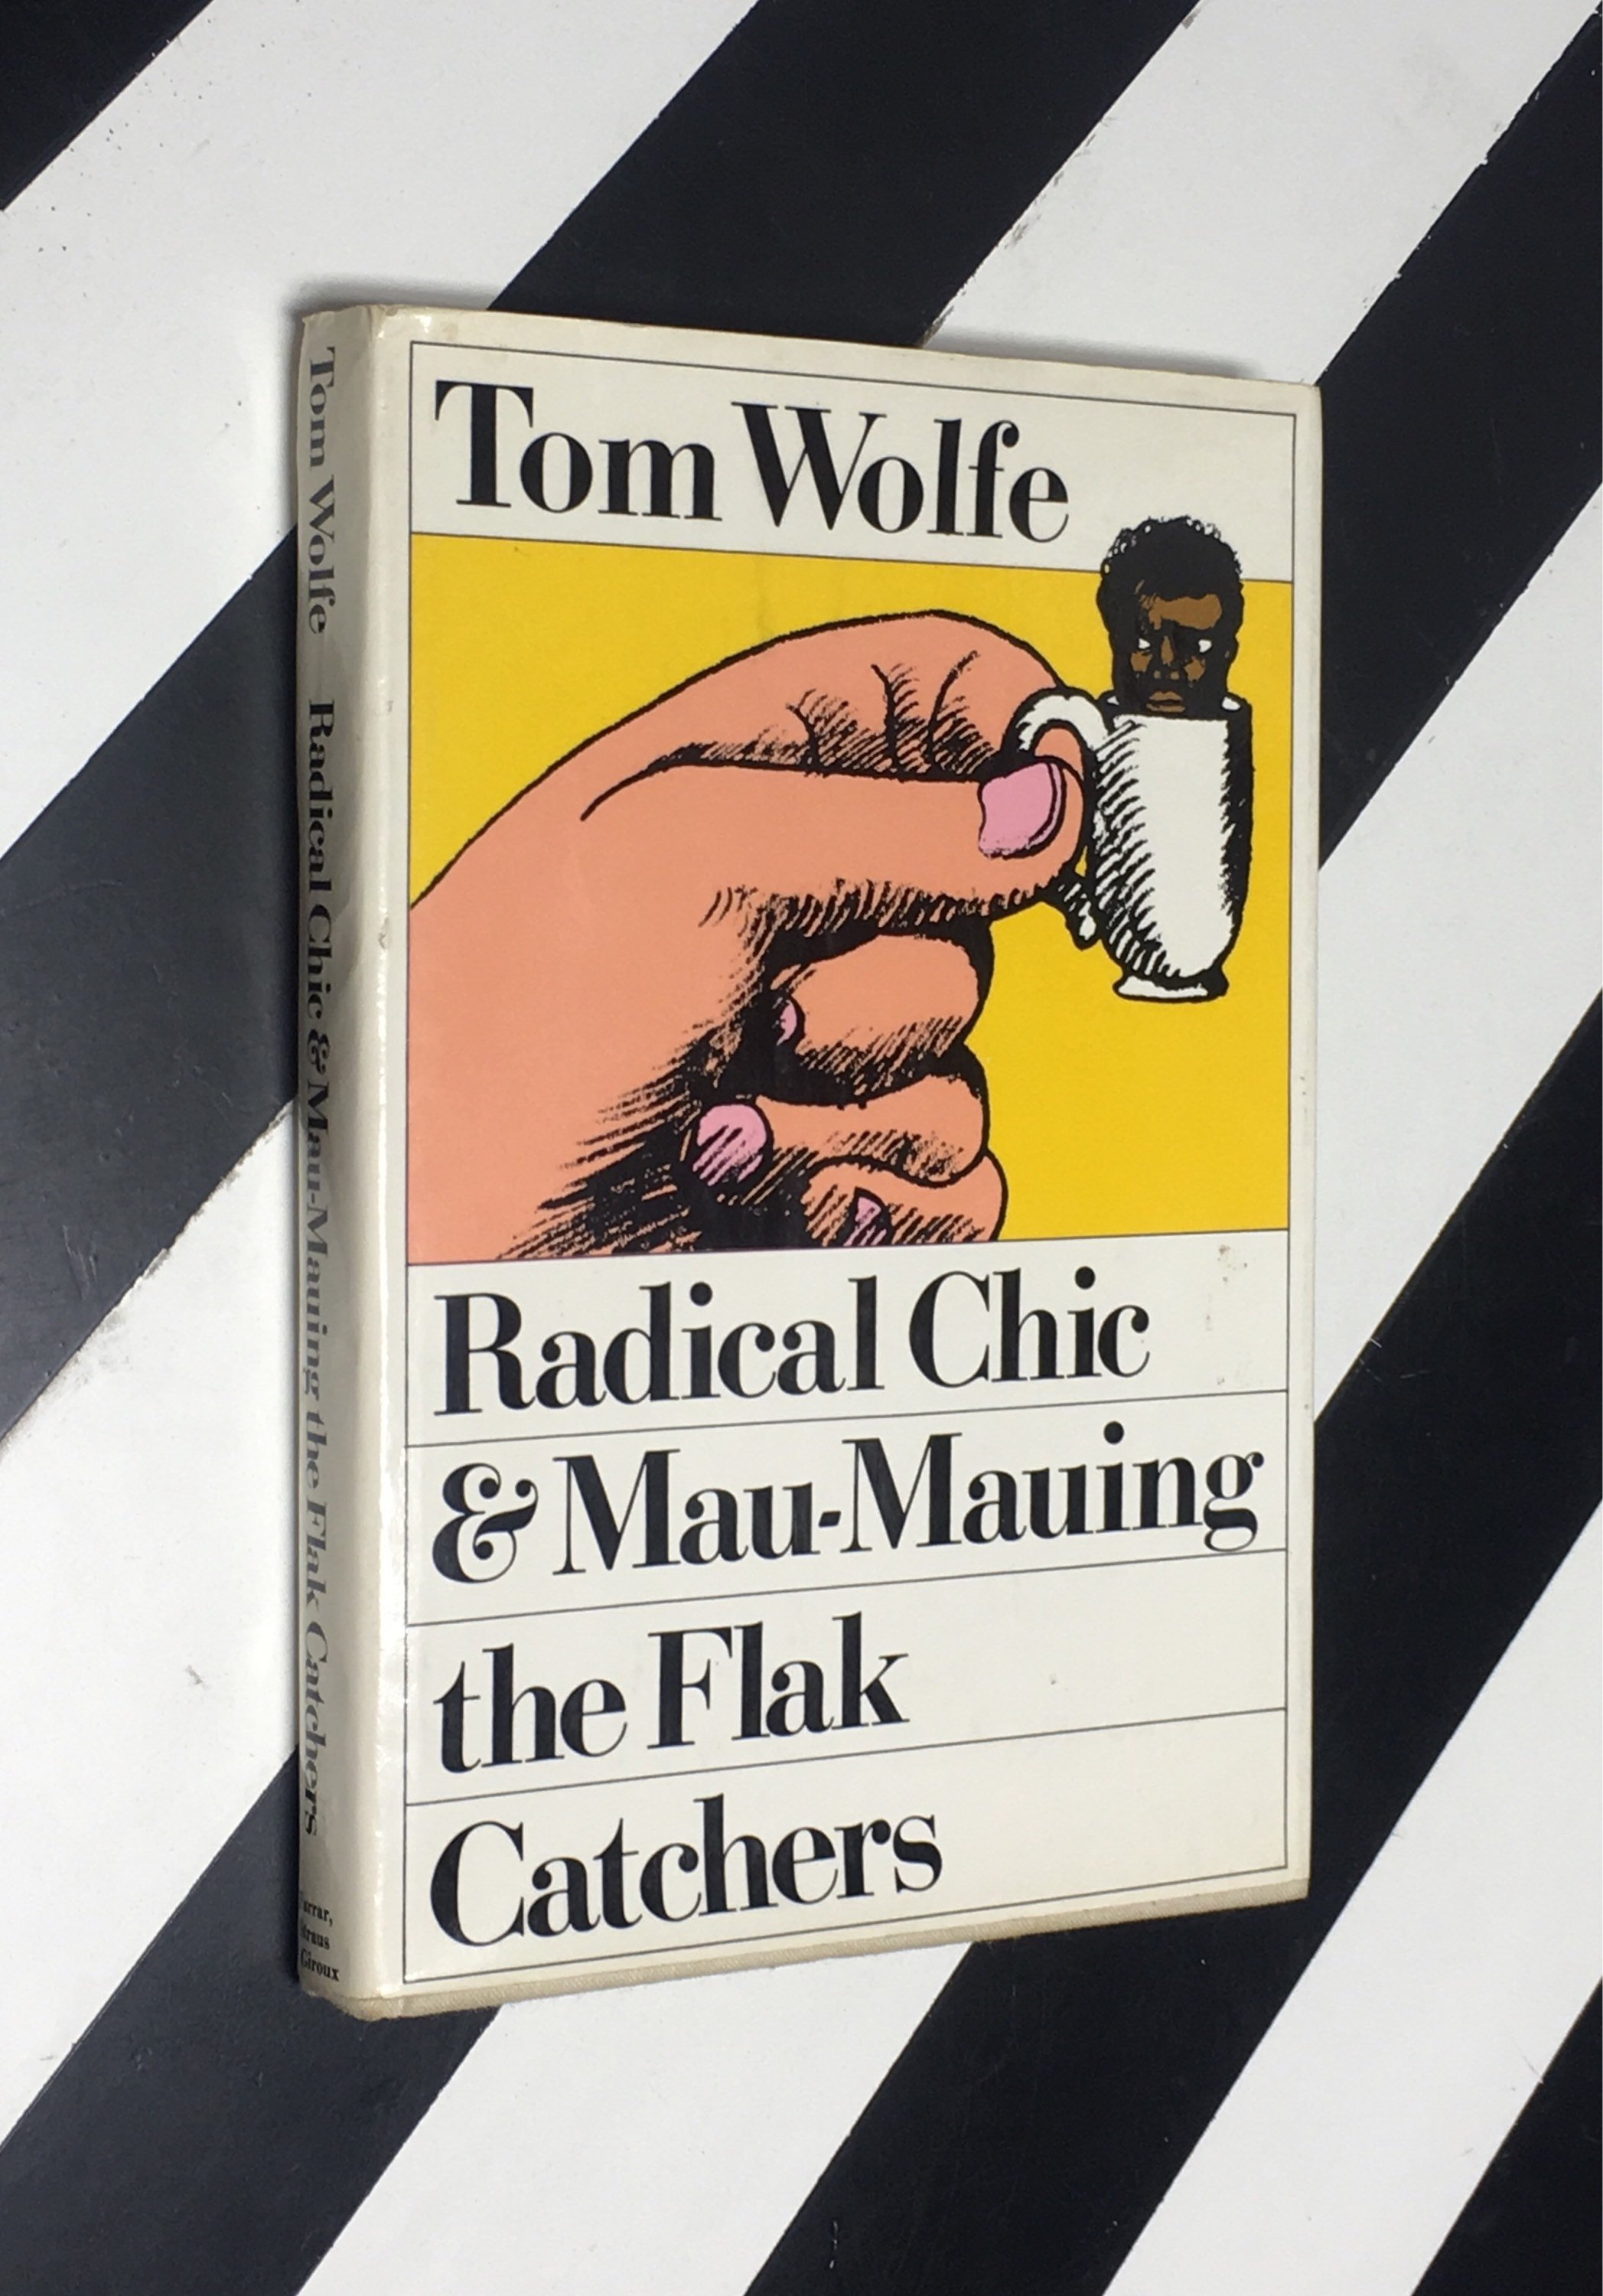 Radical Chic & Mau Mauing the Flak Catchers by Tom Wolfe (1970)